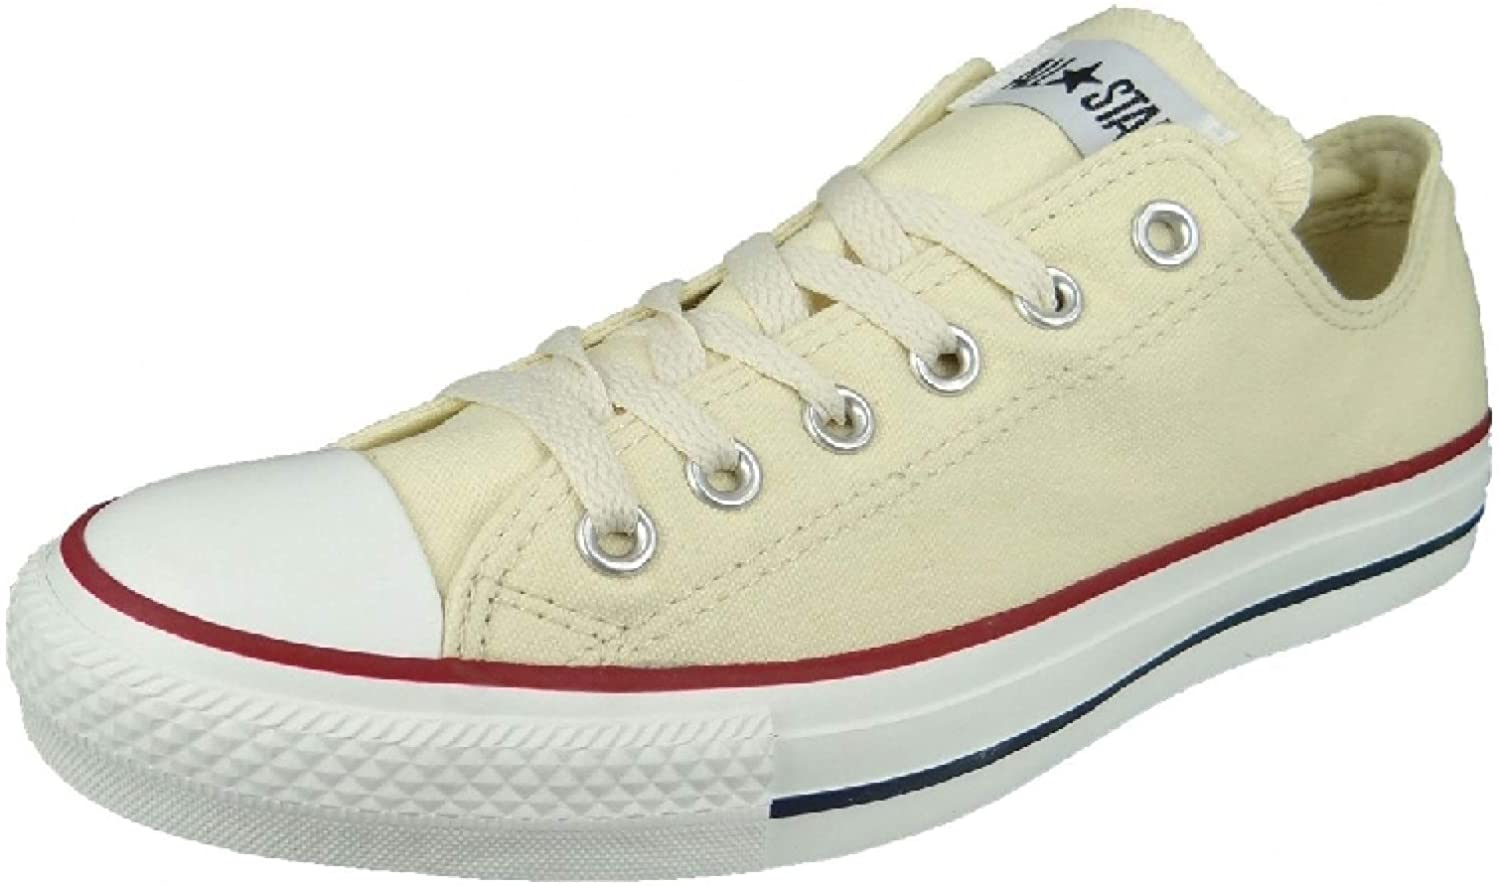 Converse Unisex-Adult Chuck Taylor Oakland Mall Fort Worth Mall Ox Star Core All